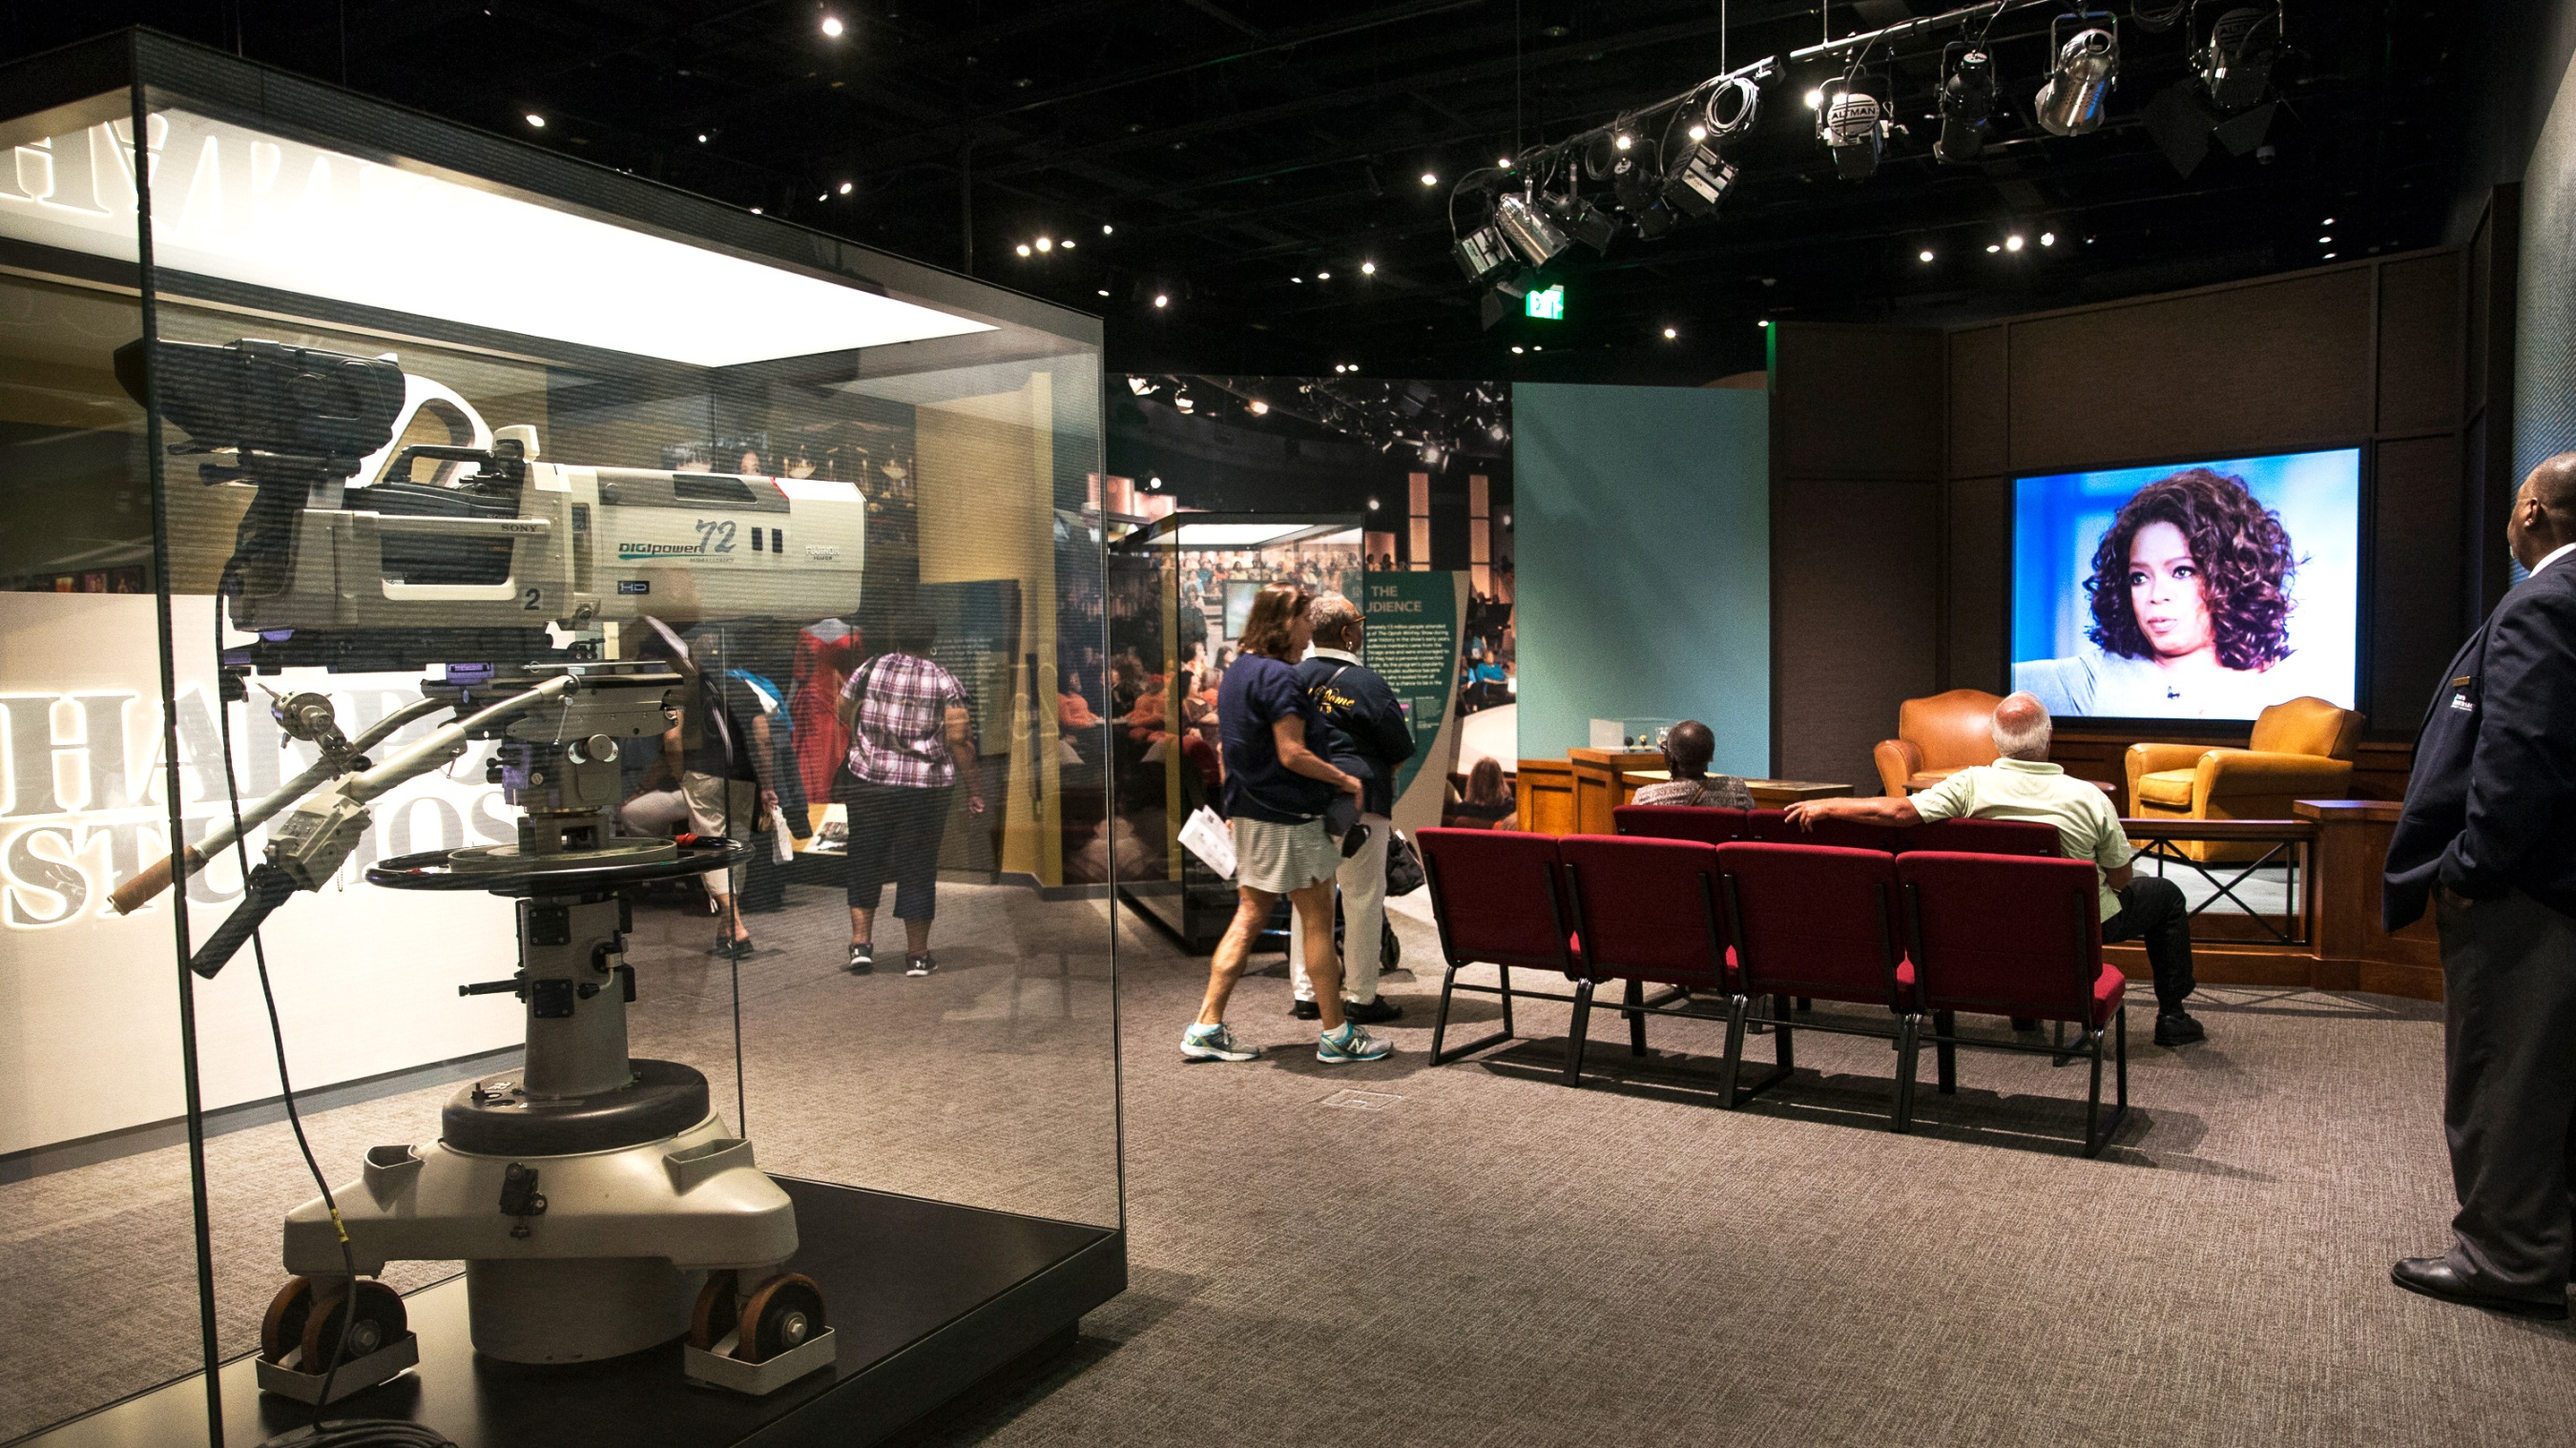 The Oprah exhibit at NMAAHC shows Oprah is even more ...  The Oprah exhib...